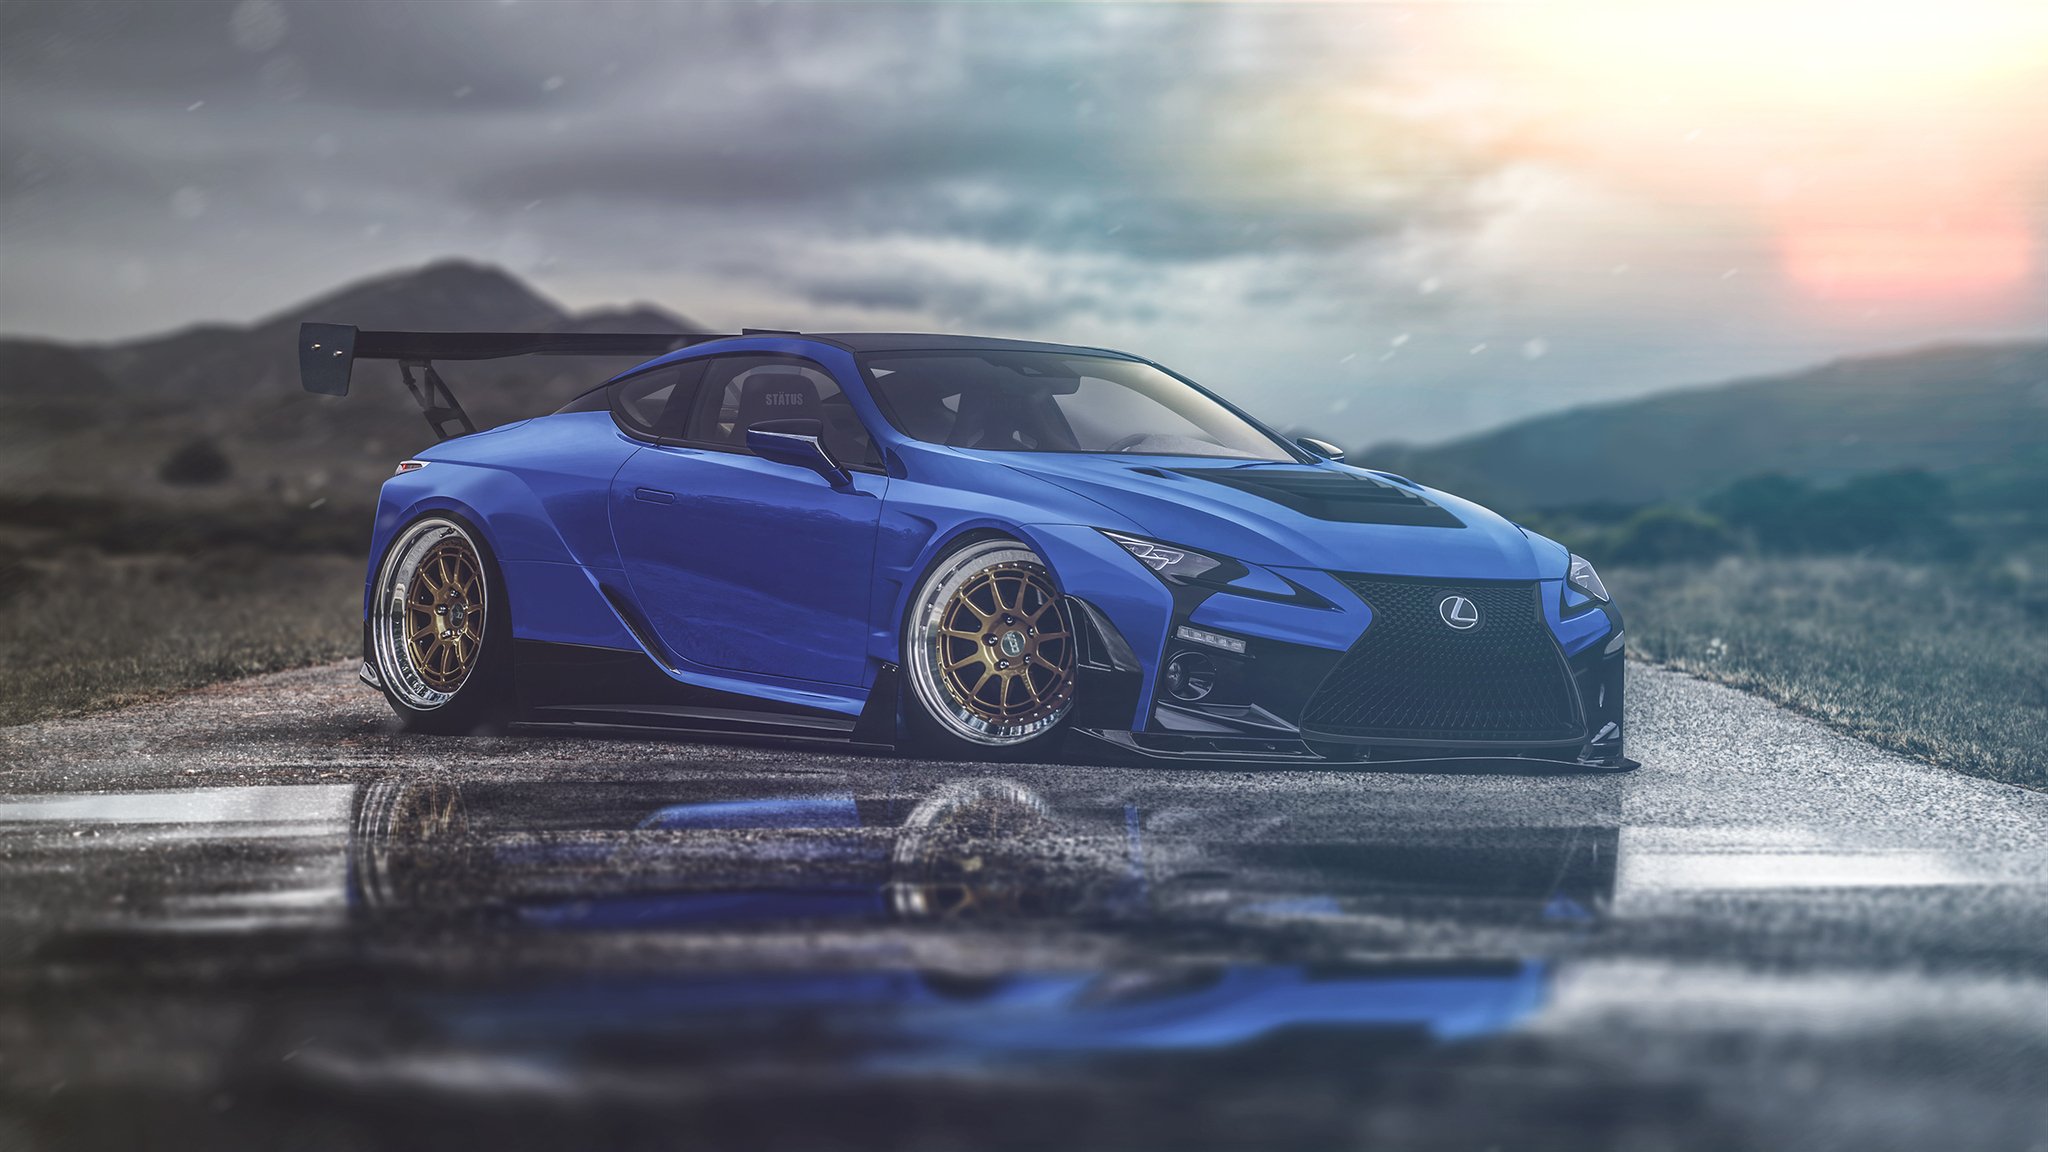 2048x1152 Lexus Lc 500 2048x1152 Resolution Hd 4k Wallpapers Images